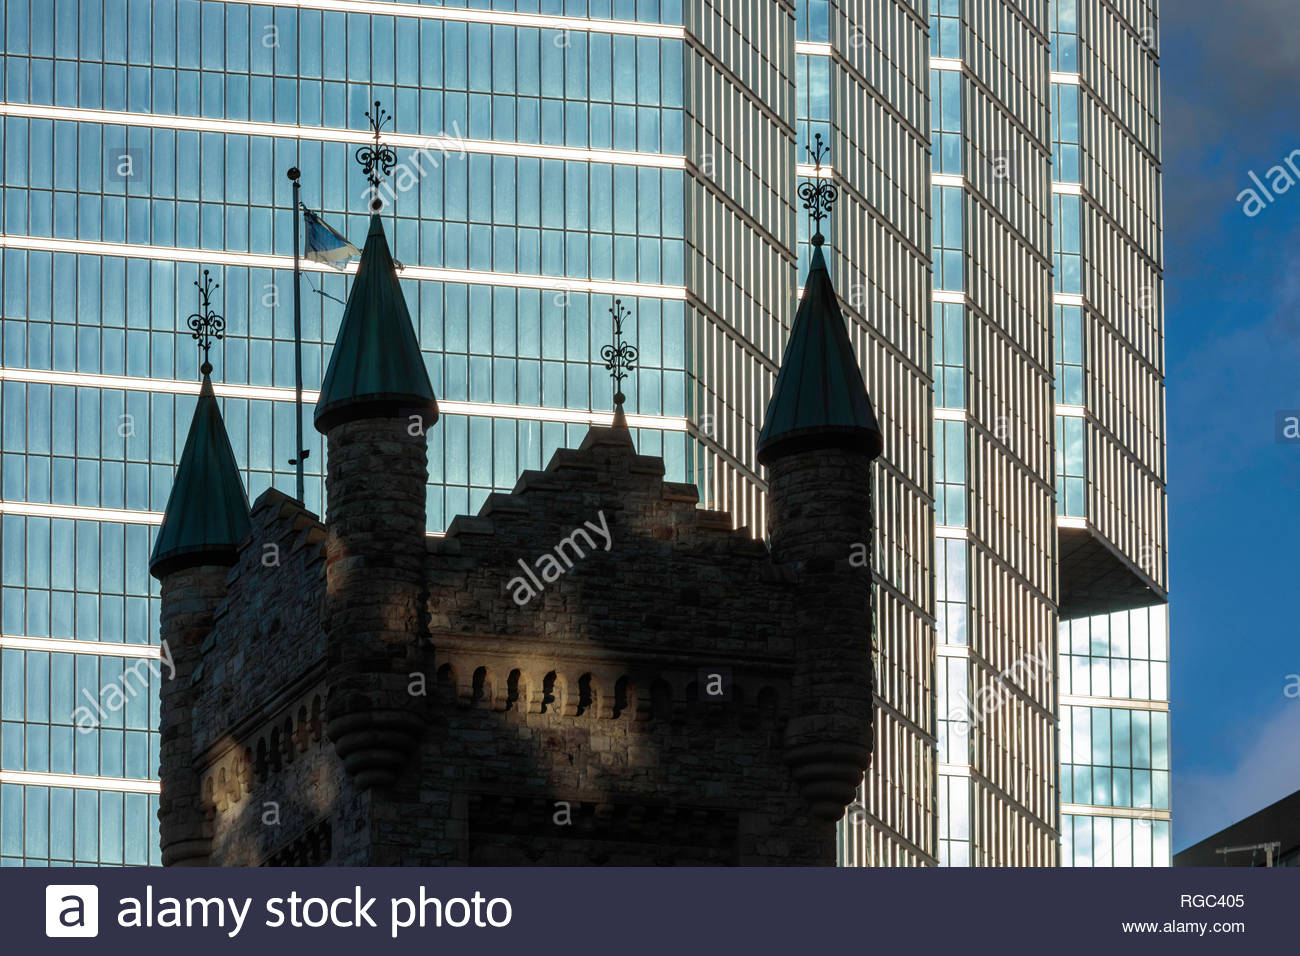 St Andrew's Church tower amongst office towers in the financial district in Toronto Ontario Canada - Stock Image